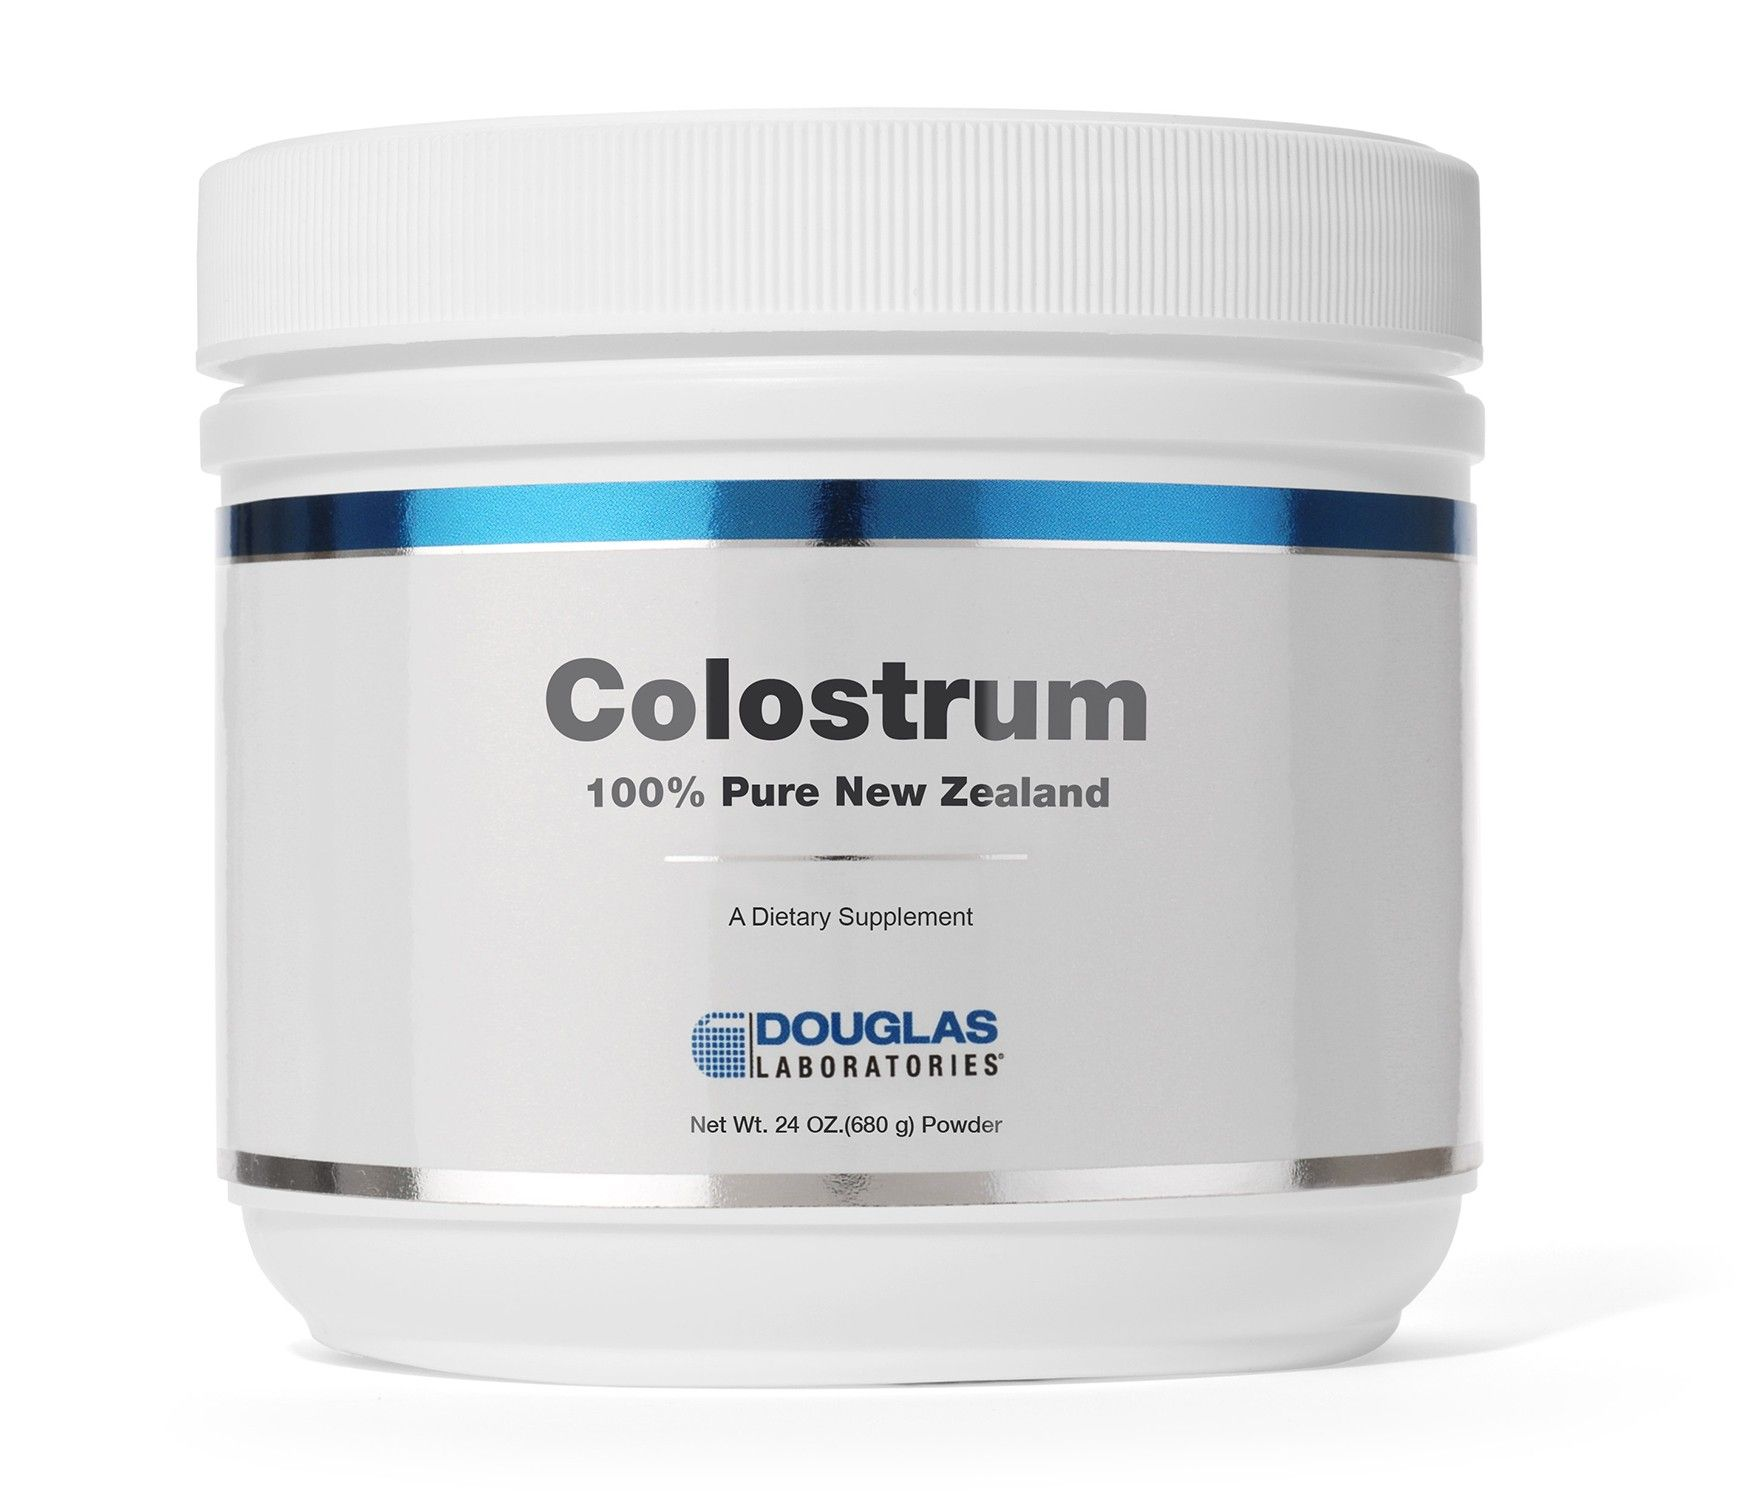 Colostrum 100 Pure New Zealand (Powder) Pure products